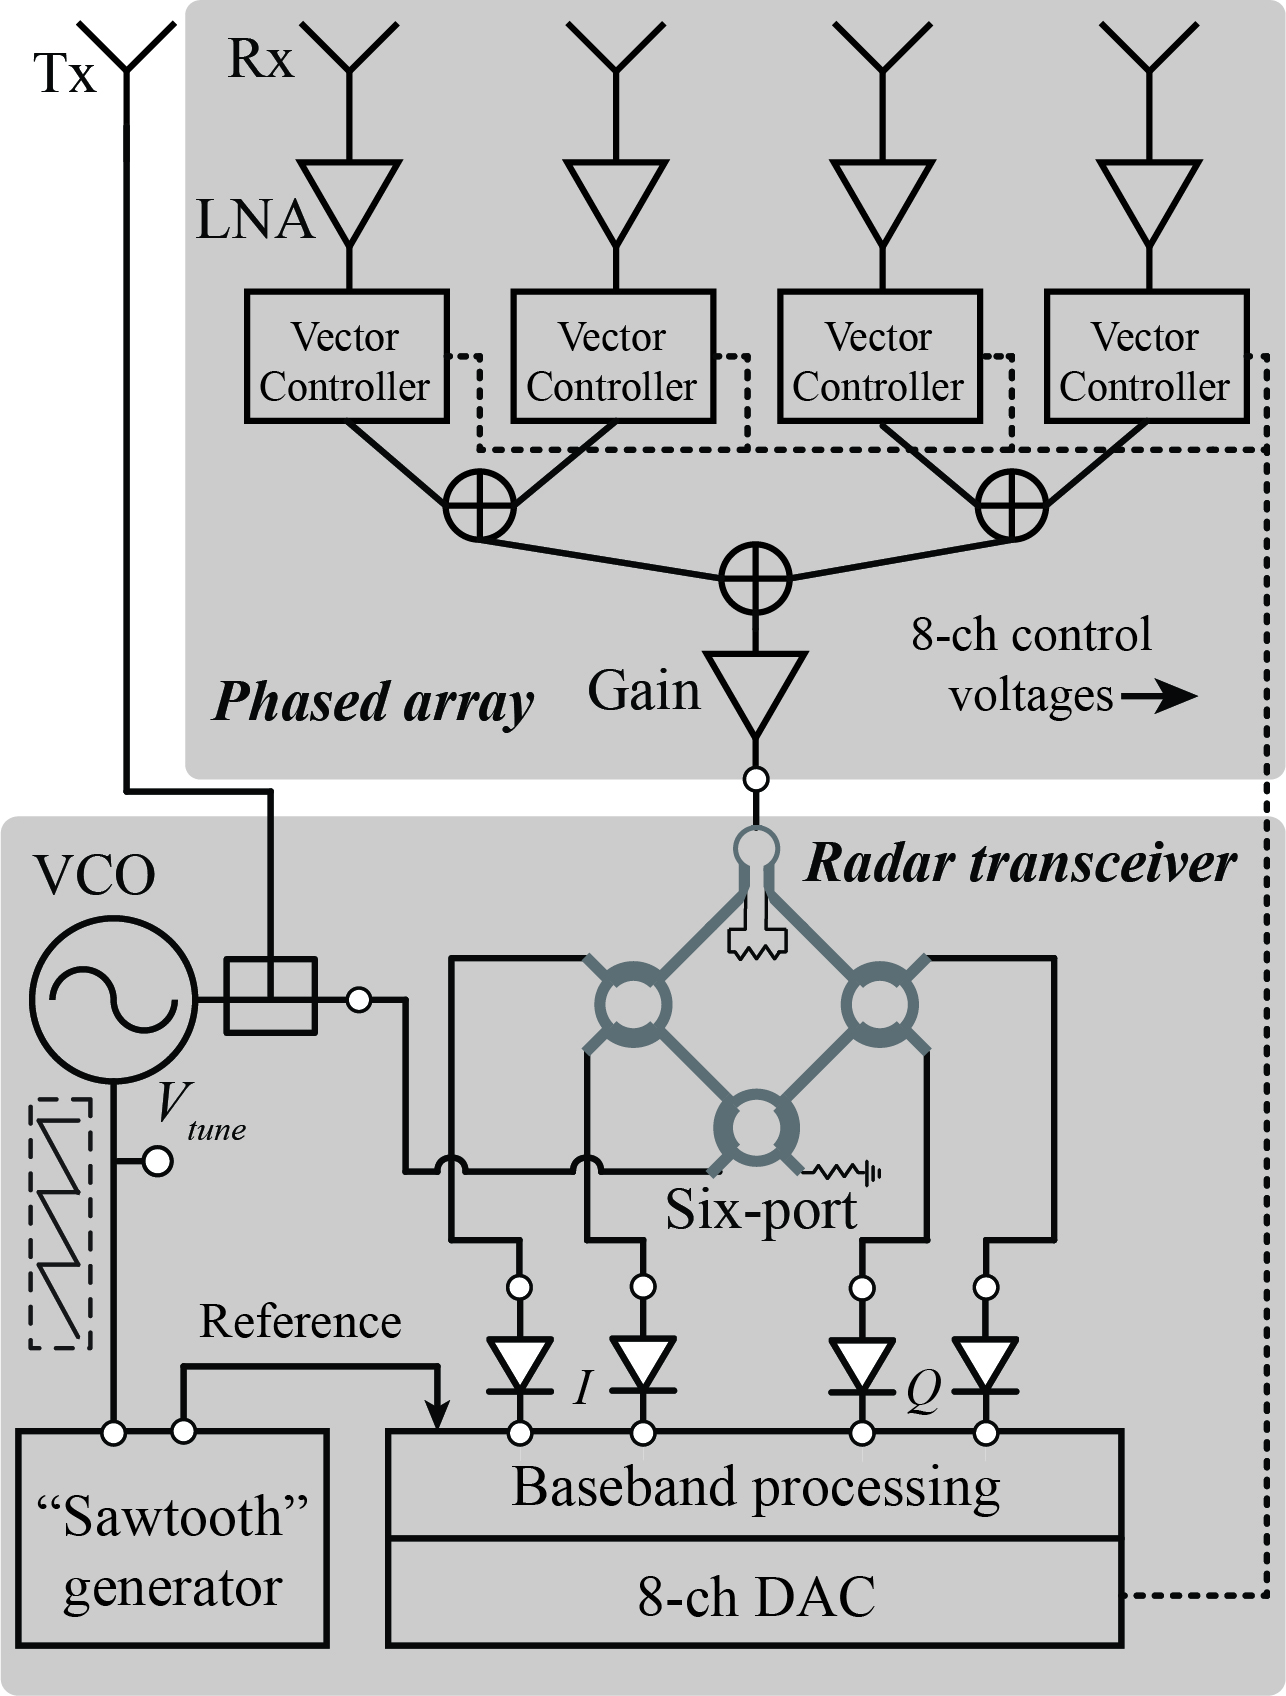 Fig. 1. Block Diagram of the 24 GHz Phased Array Radar